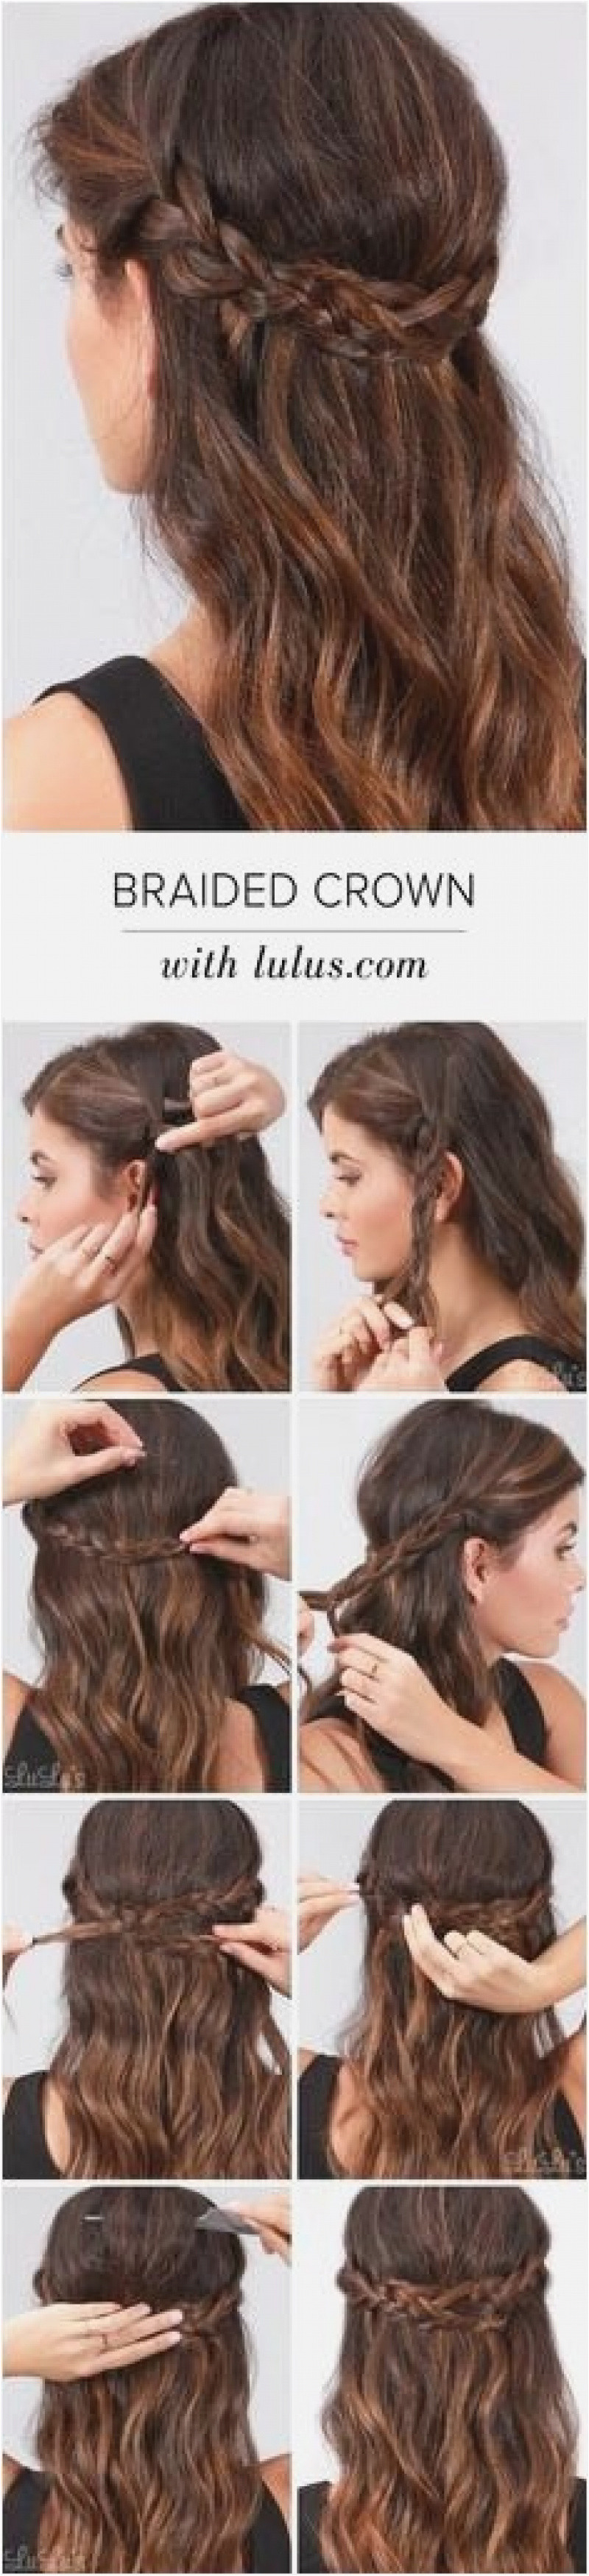 Easy Hairstyles to Do with Long Curly Hair Good Cute Easy Hairstyles for Long Curly Hair